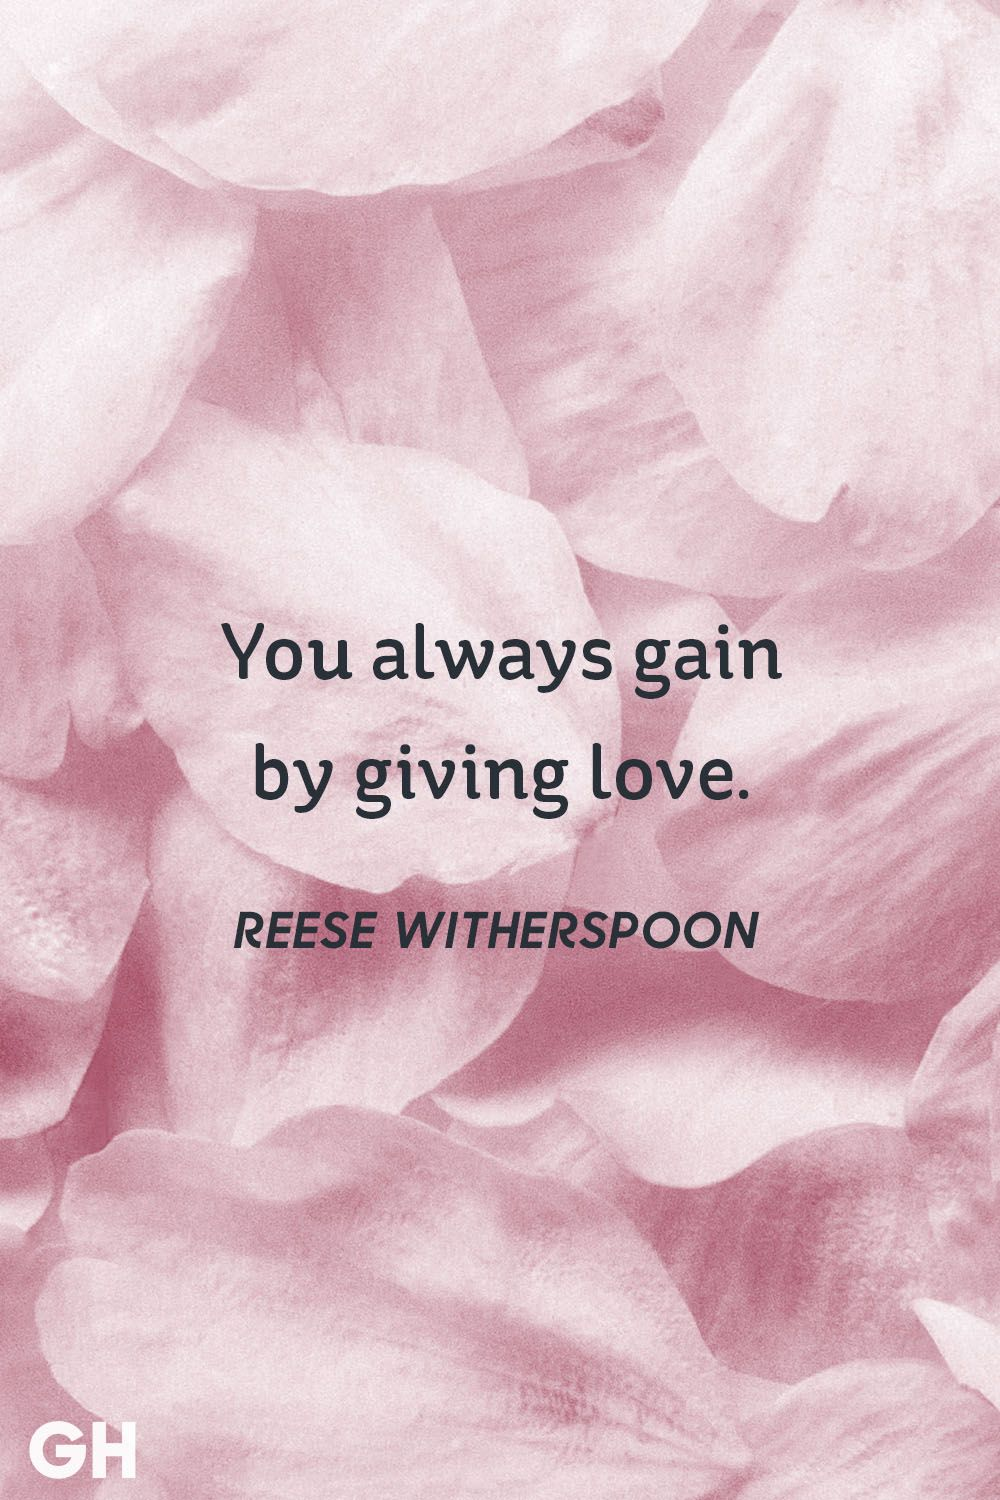 Reese Witherspoon love quote